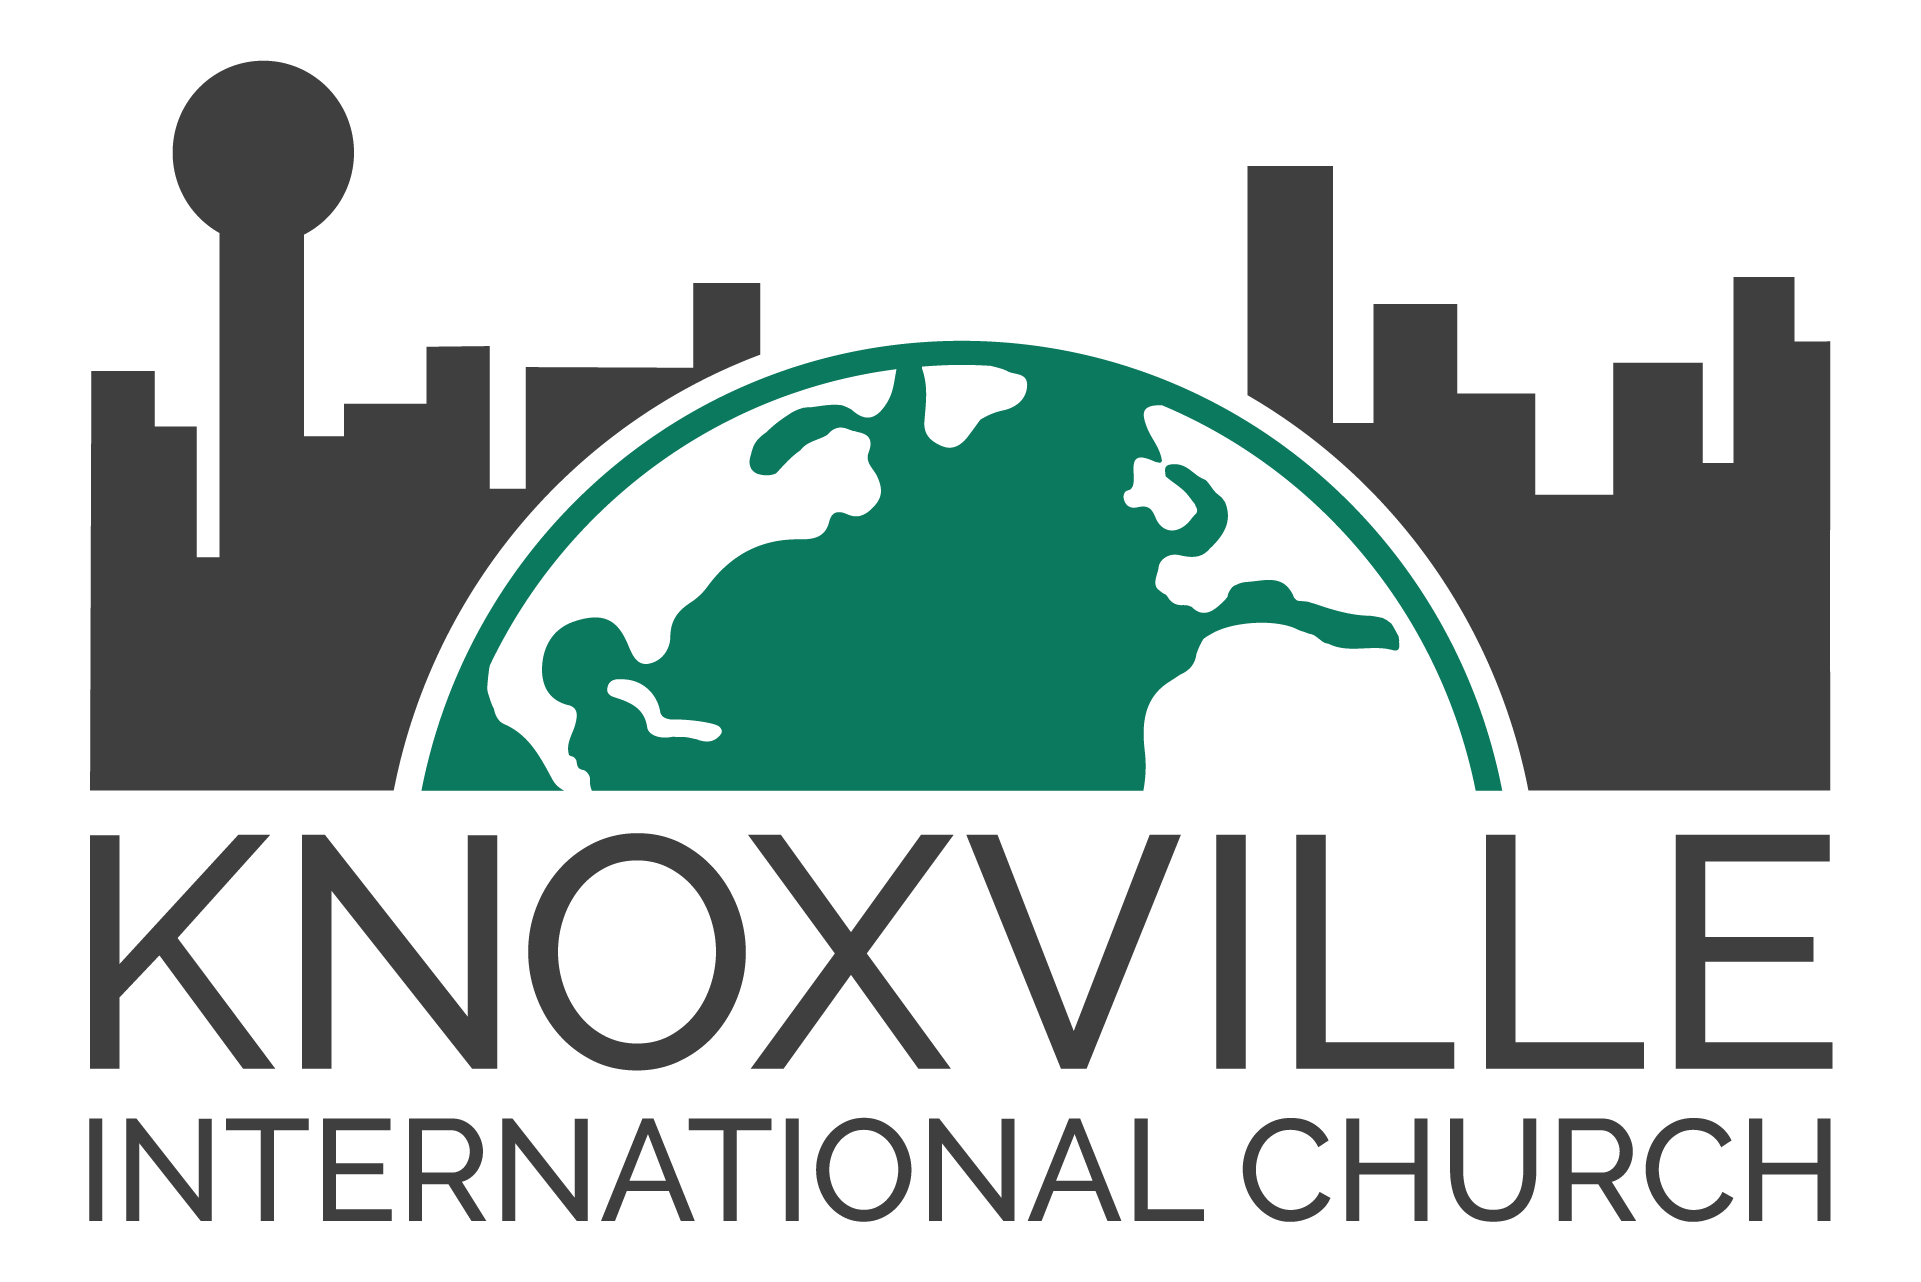 Knoxville International Church